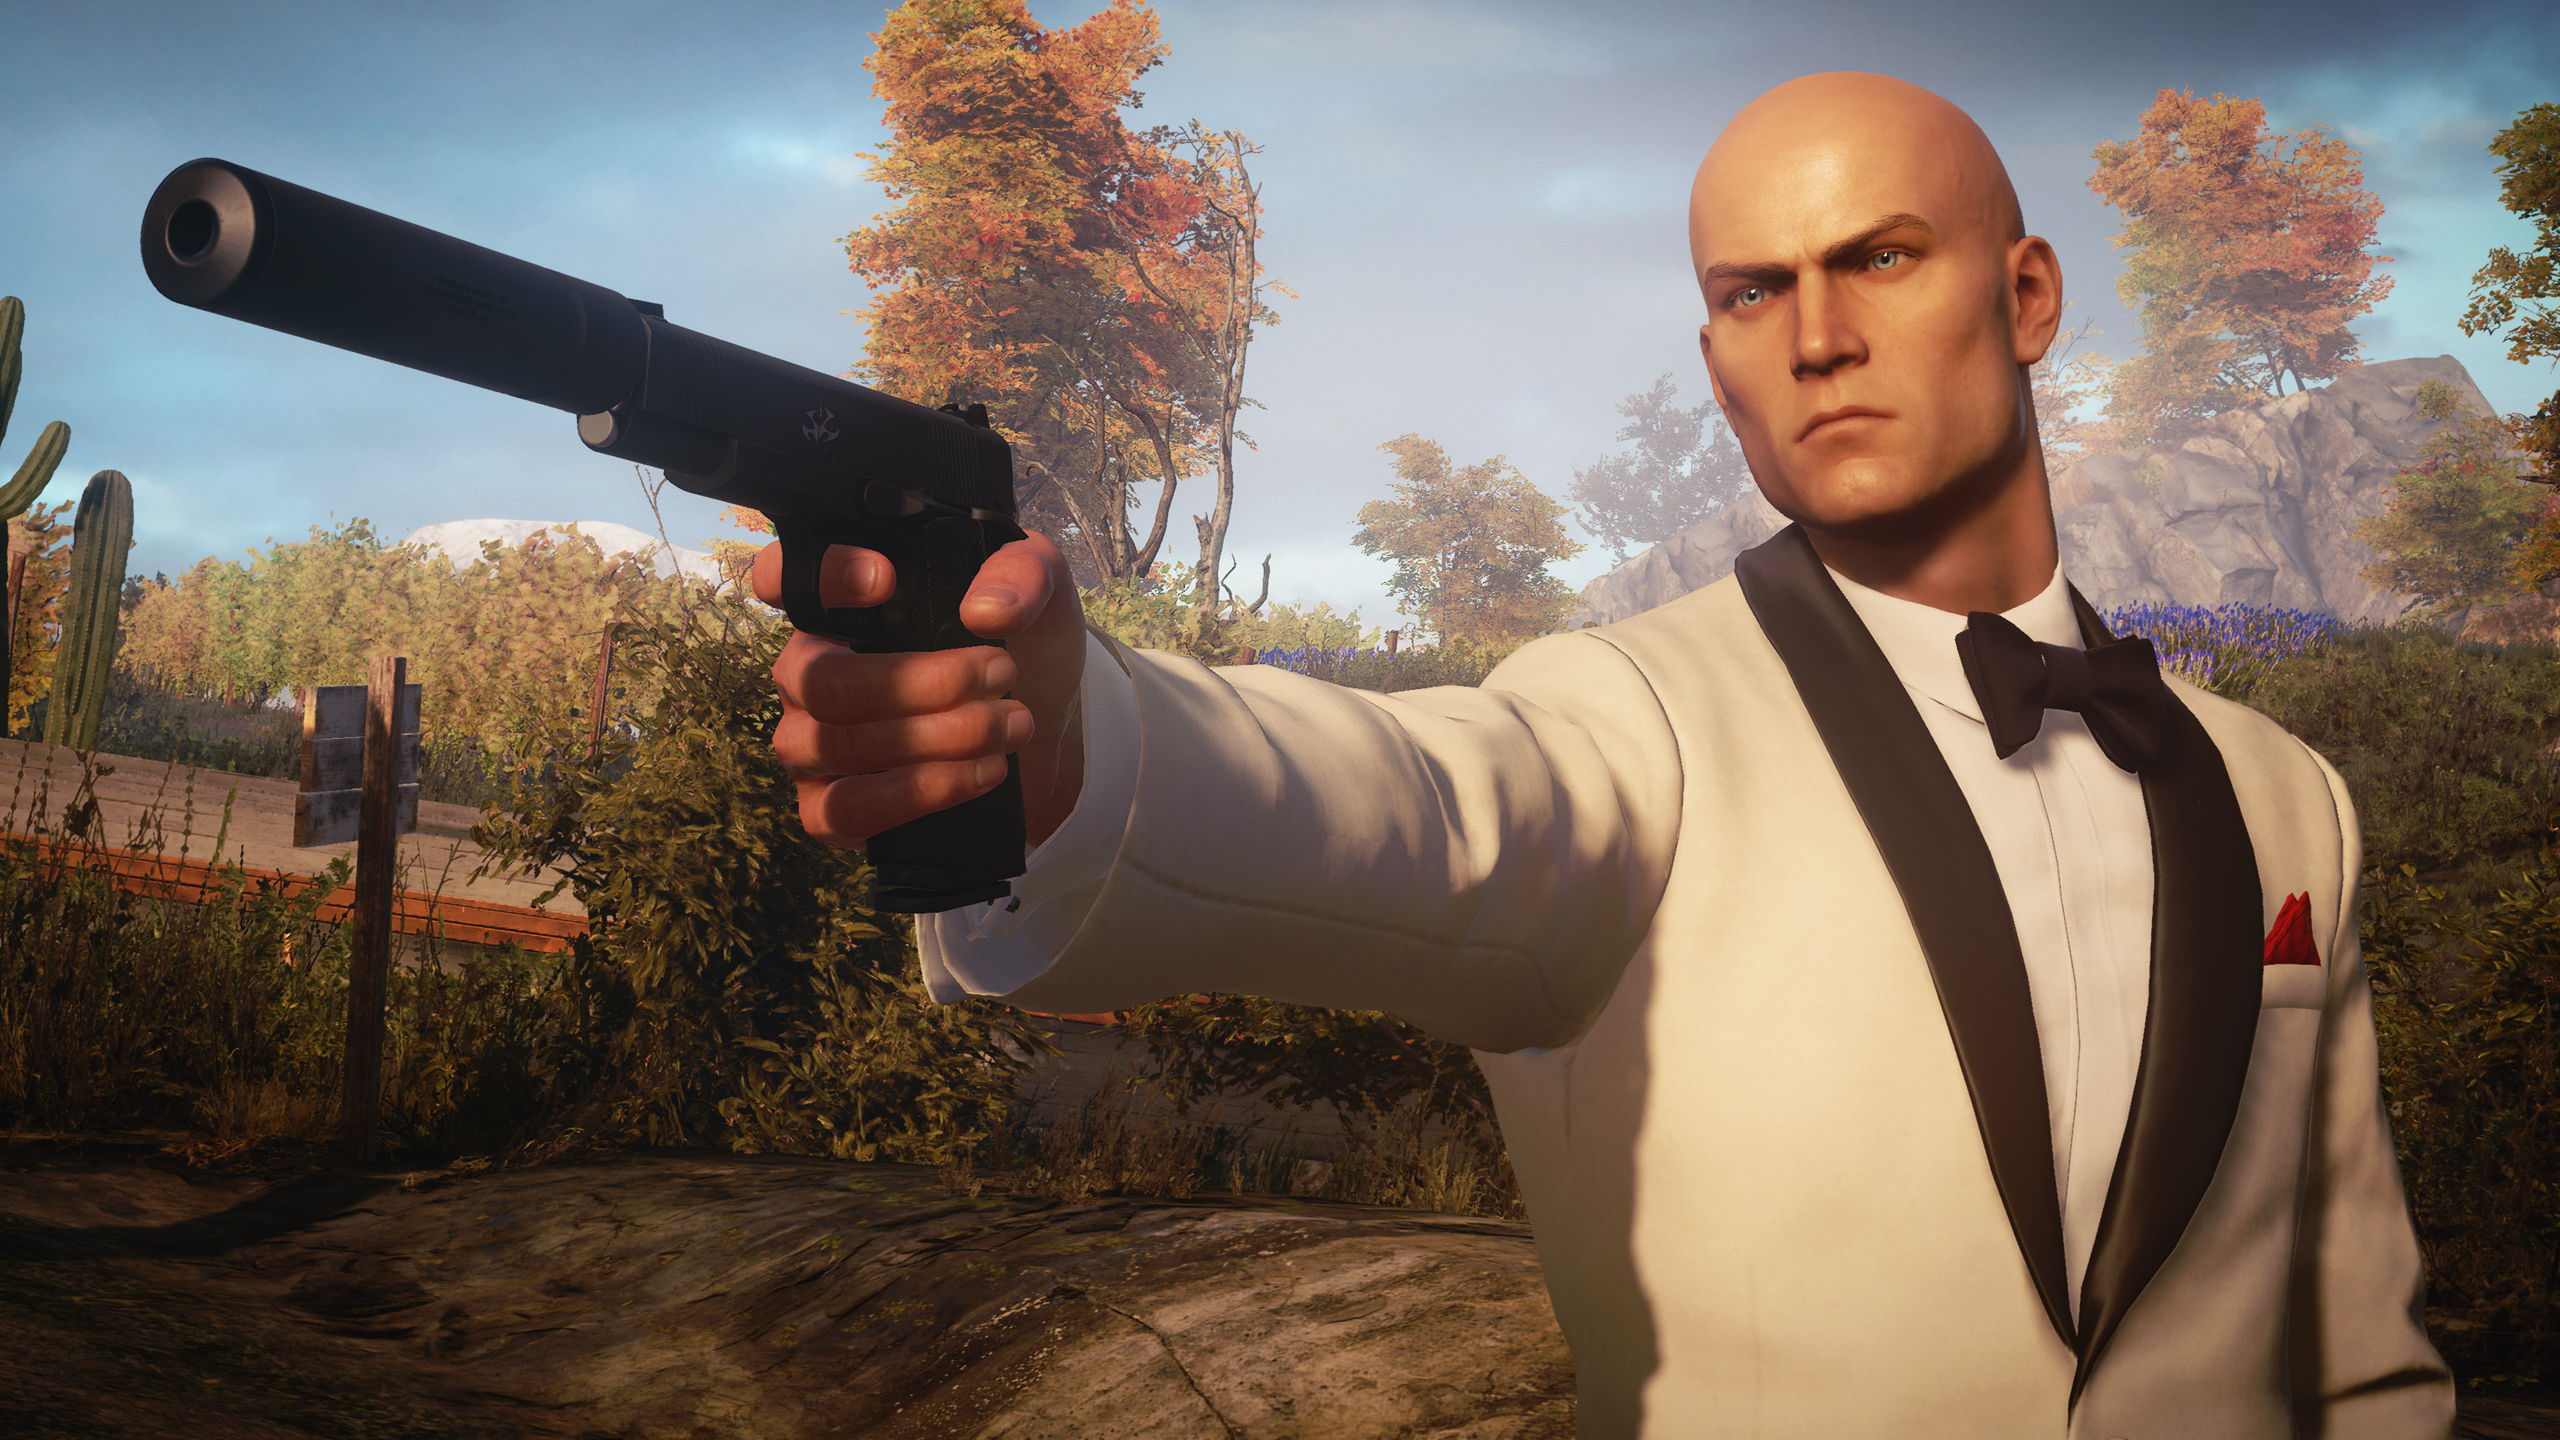 Here's how to acquire admin privileges in Hitman 3